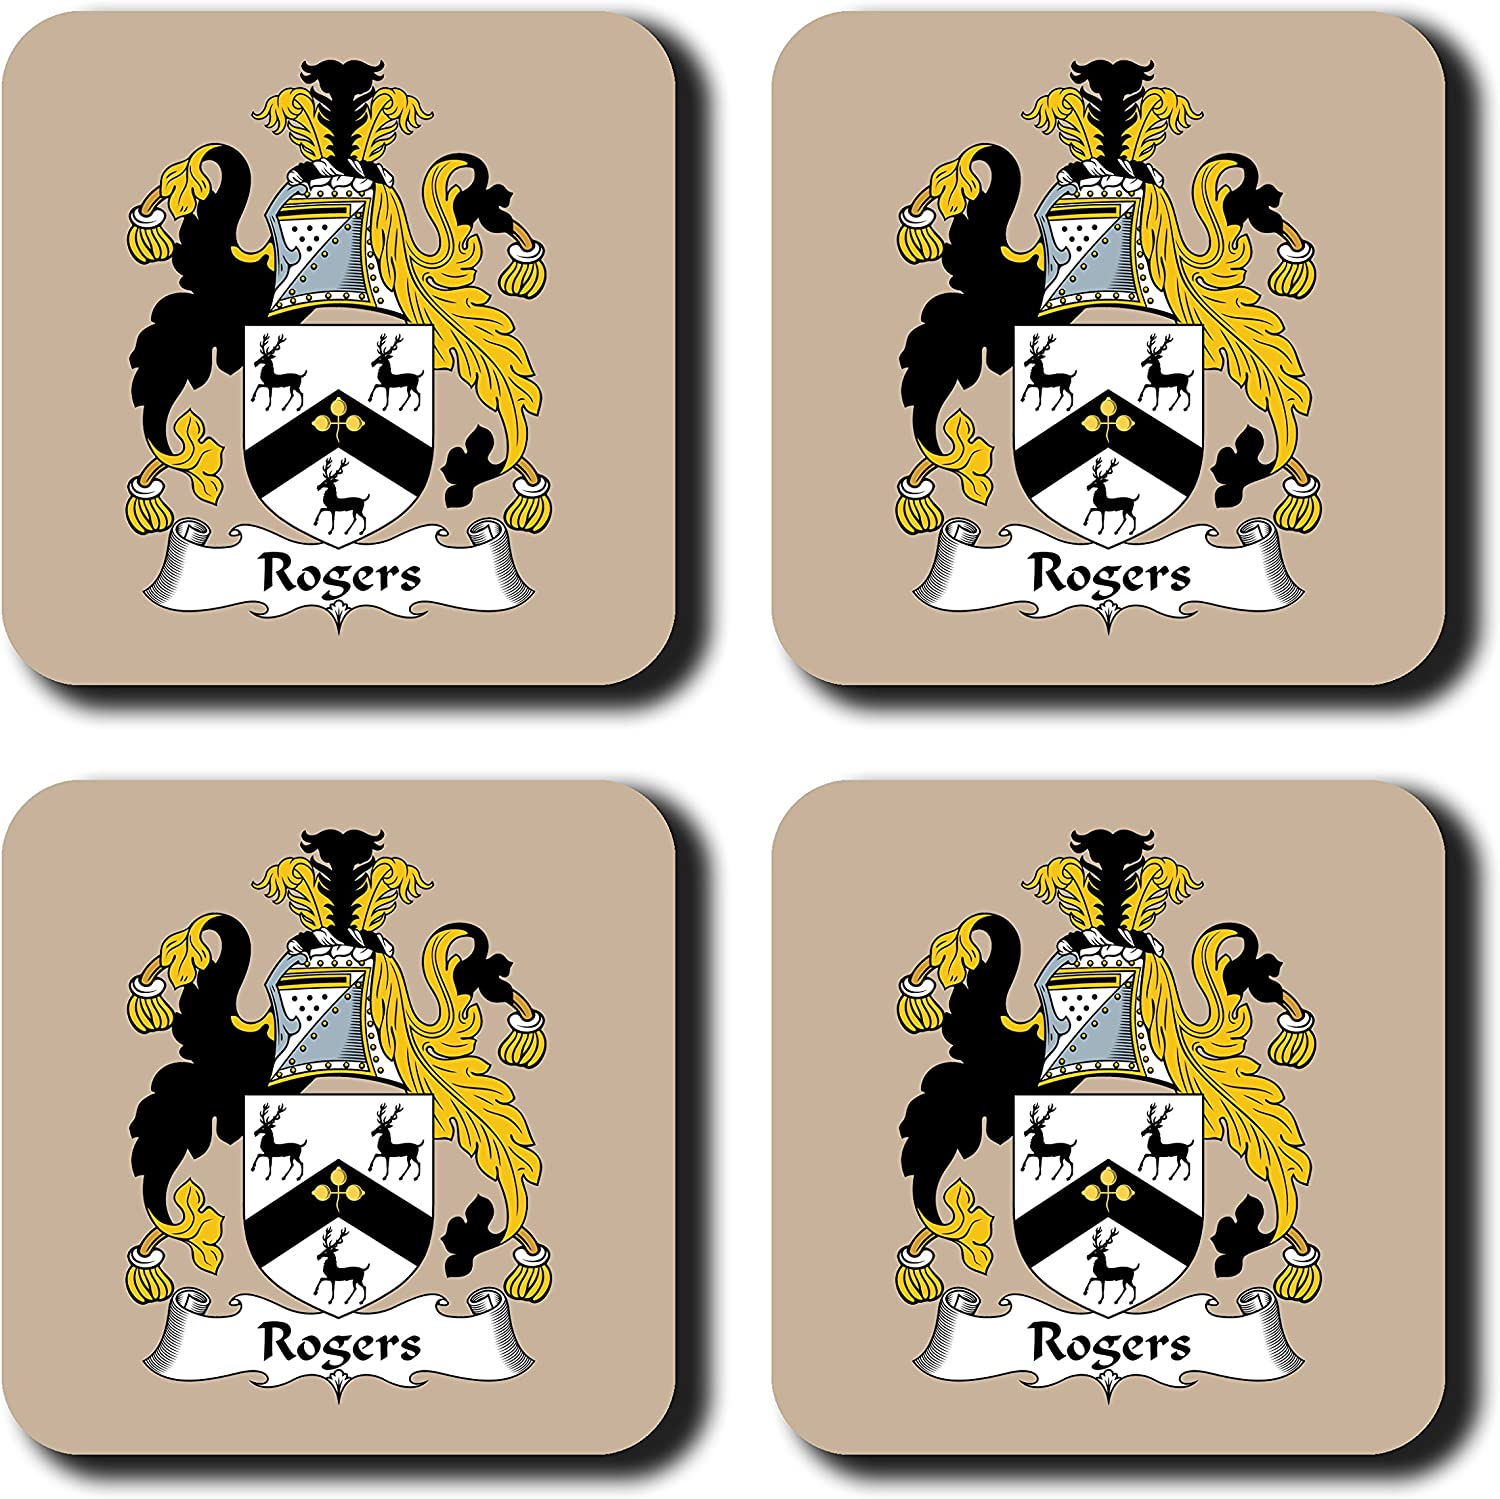 Rogers Coat of Arms/Family Crest Coaster Set, by Carpe Diem Designs – Made in the U.S.A.